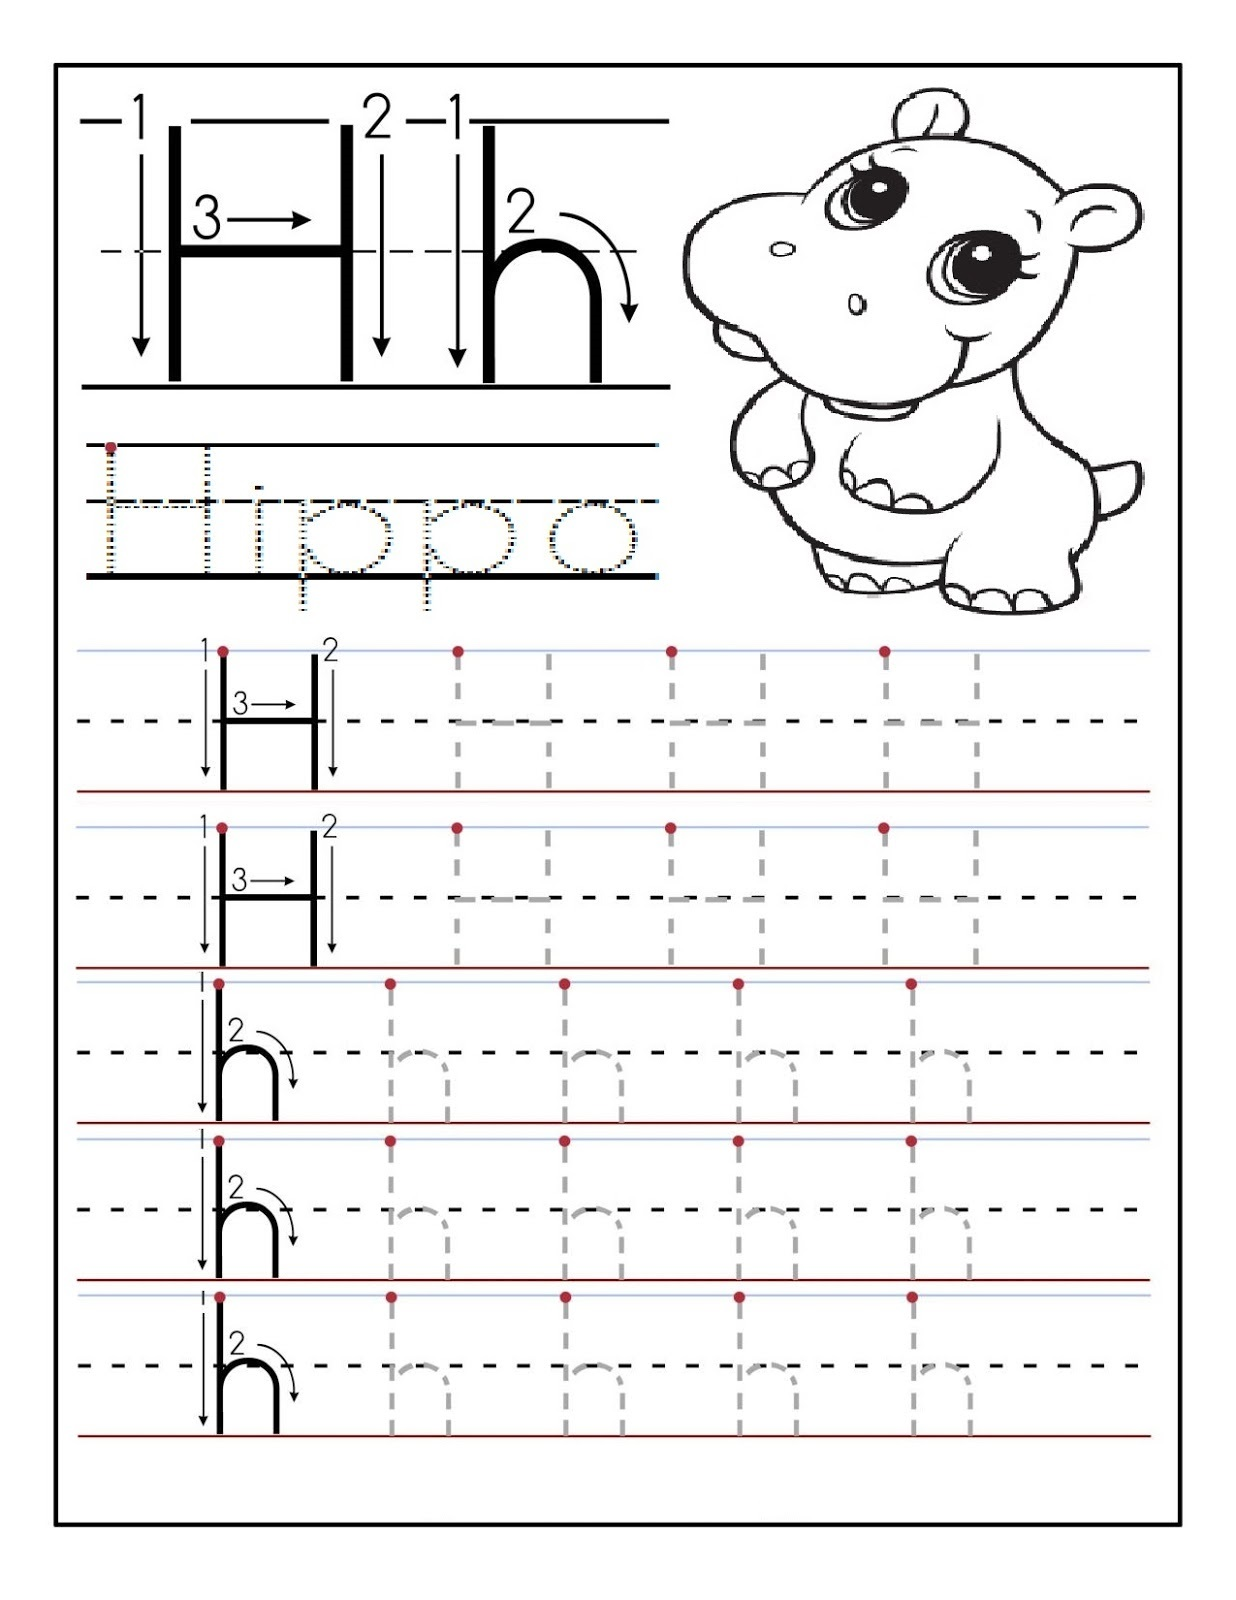 Letter H Worksheets For Kindergarteners: Letter H Worksheets for Preschool   Preschool Crafts,